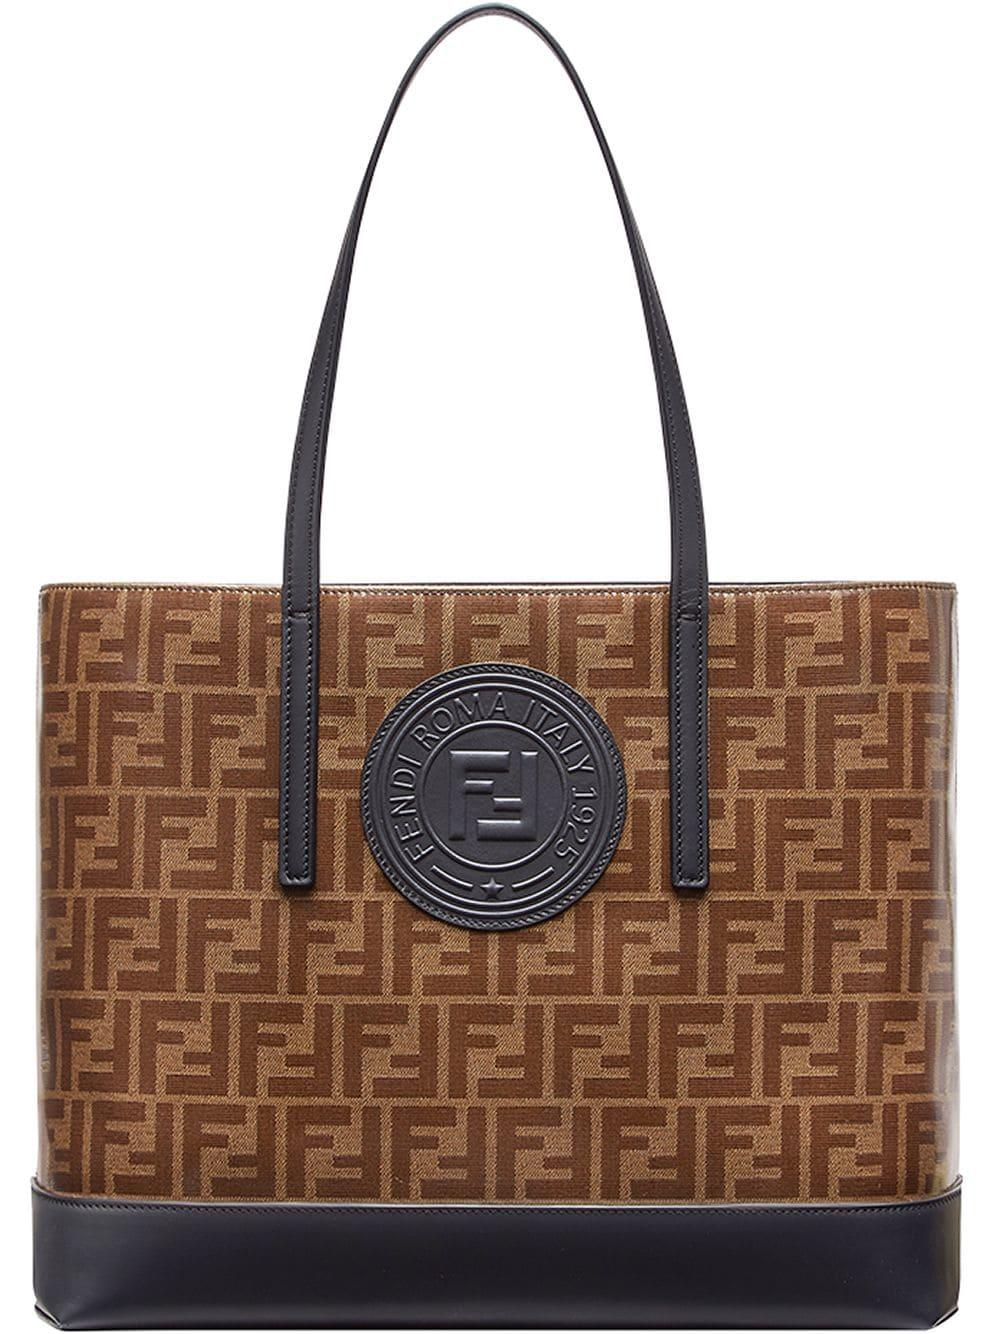 94241b441a Lyst - Fendi Brown And Black Forever Shopper Tote in Brown - Save 23%